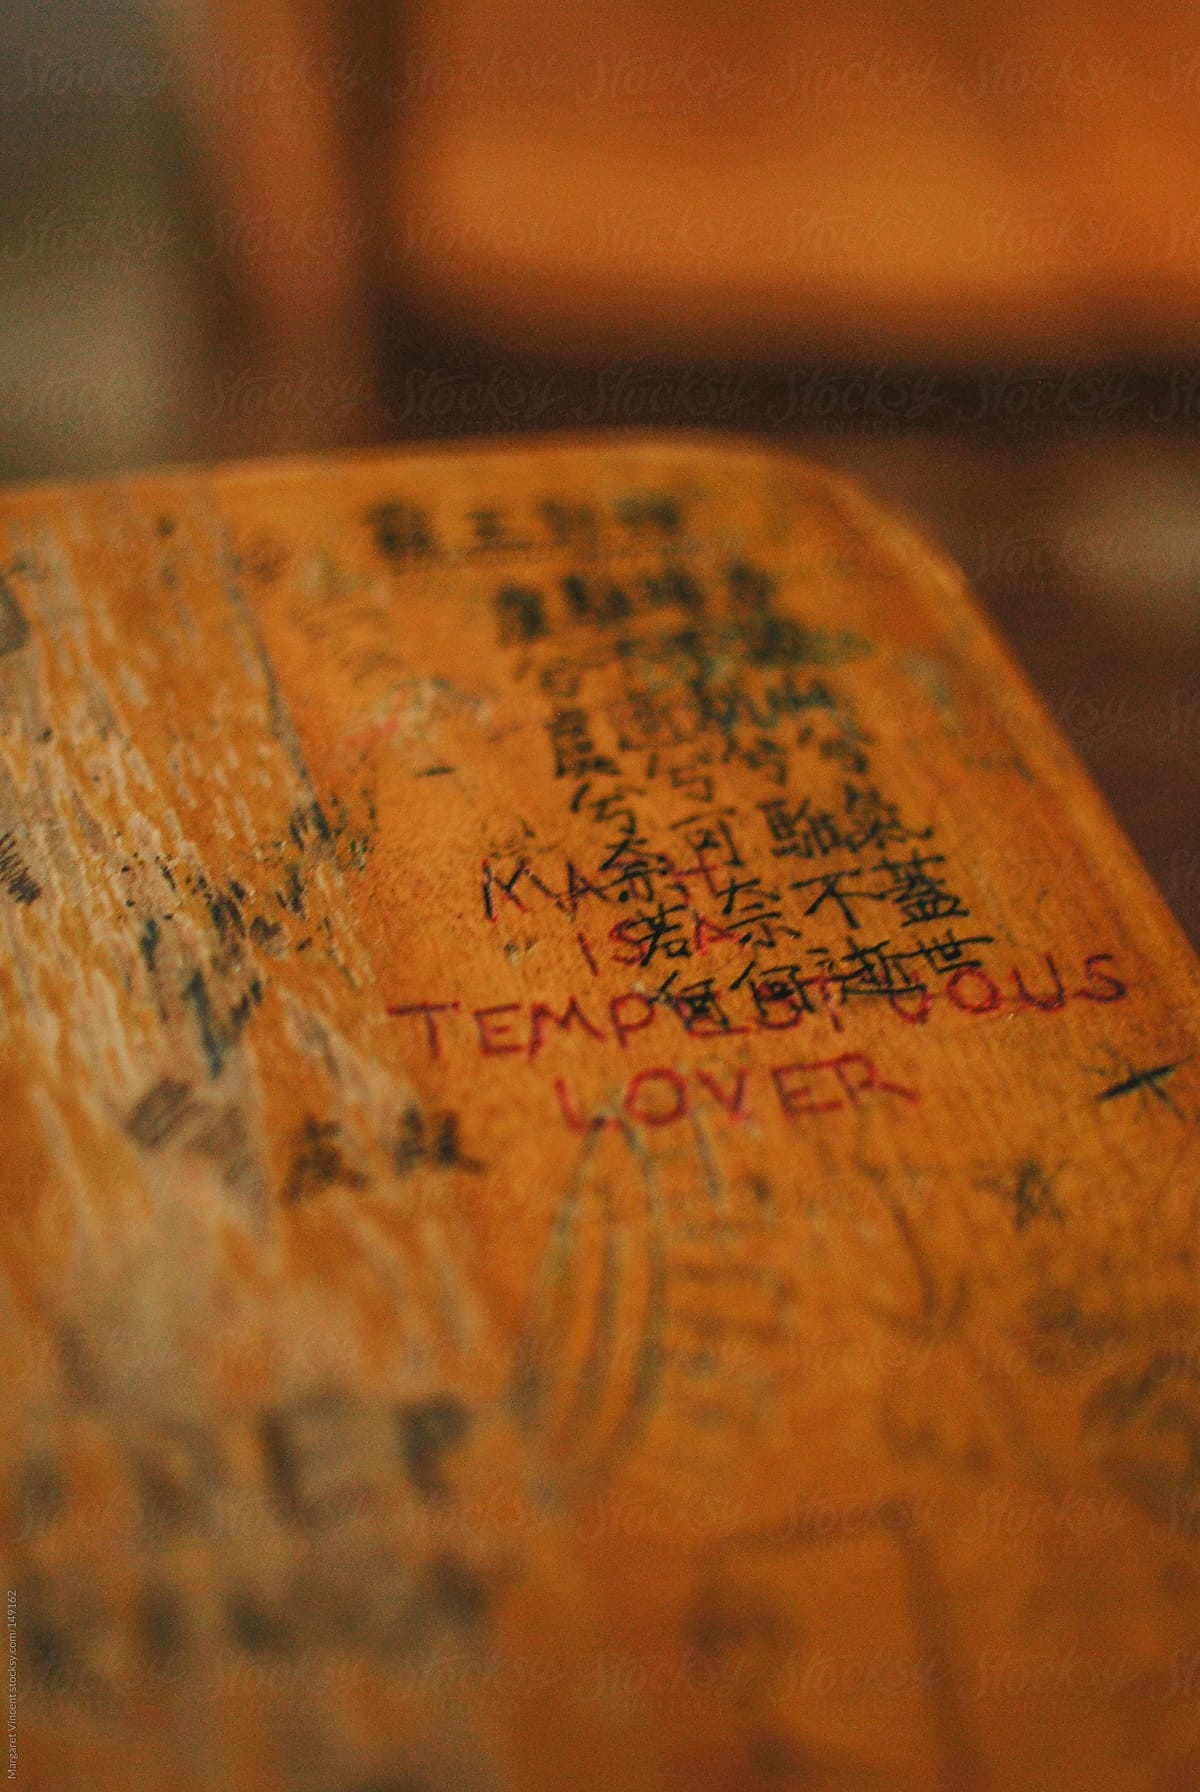 graffiti scratched into school desk top by Margaret Vincent ...